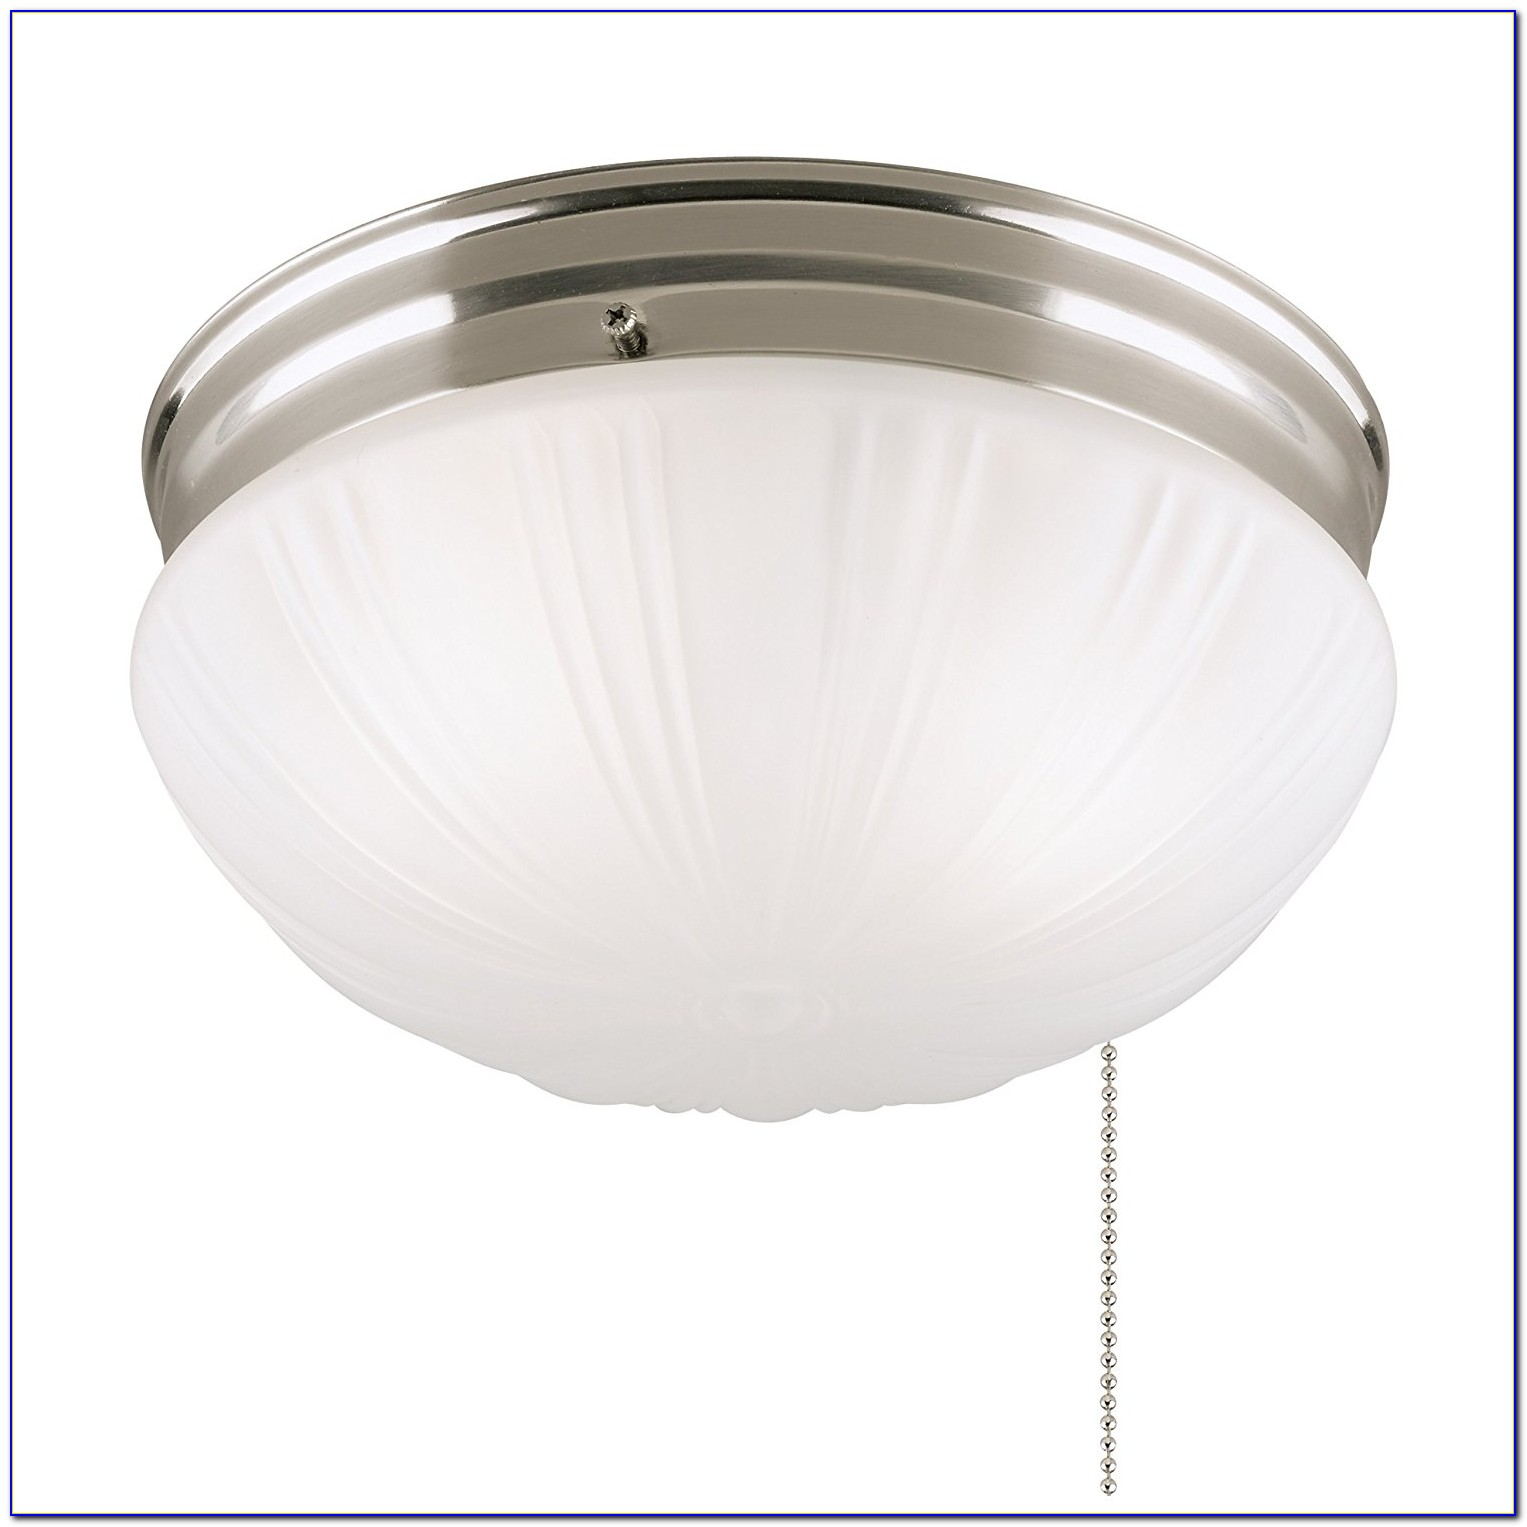 Tiffany Ceiling Light With Pull Chain